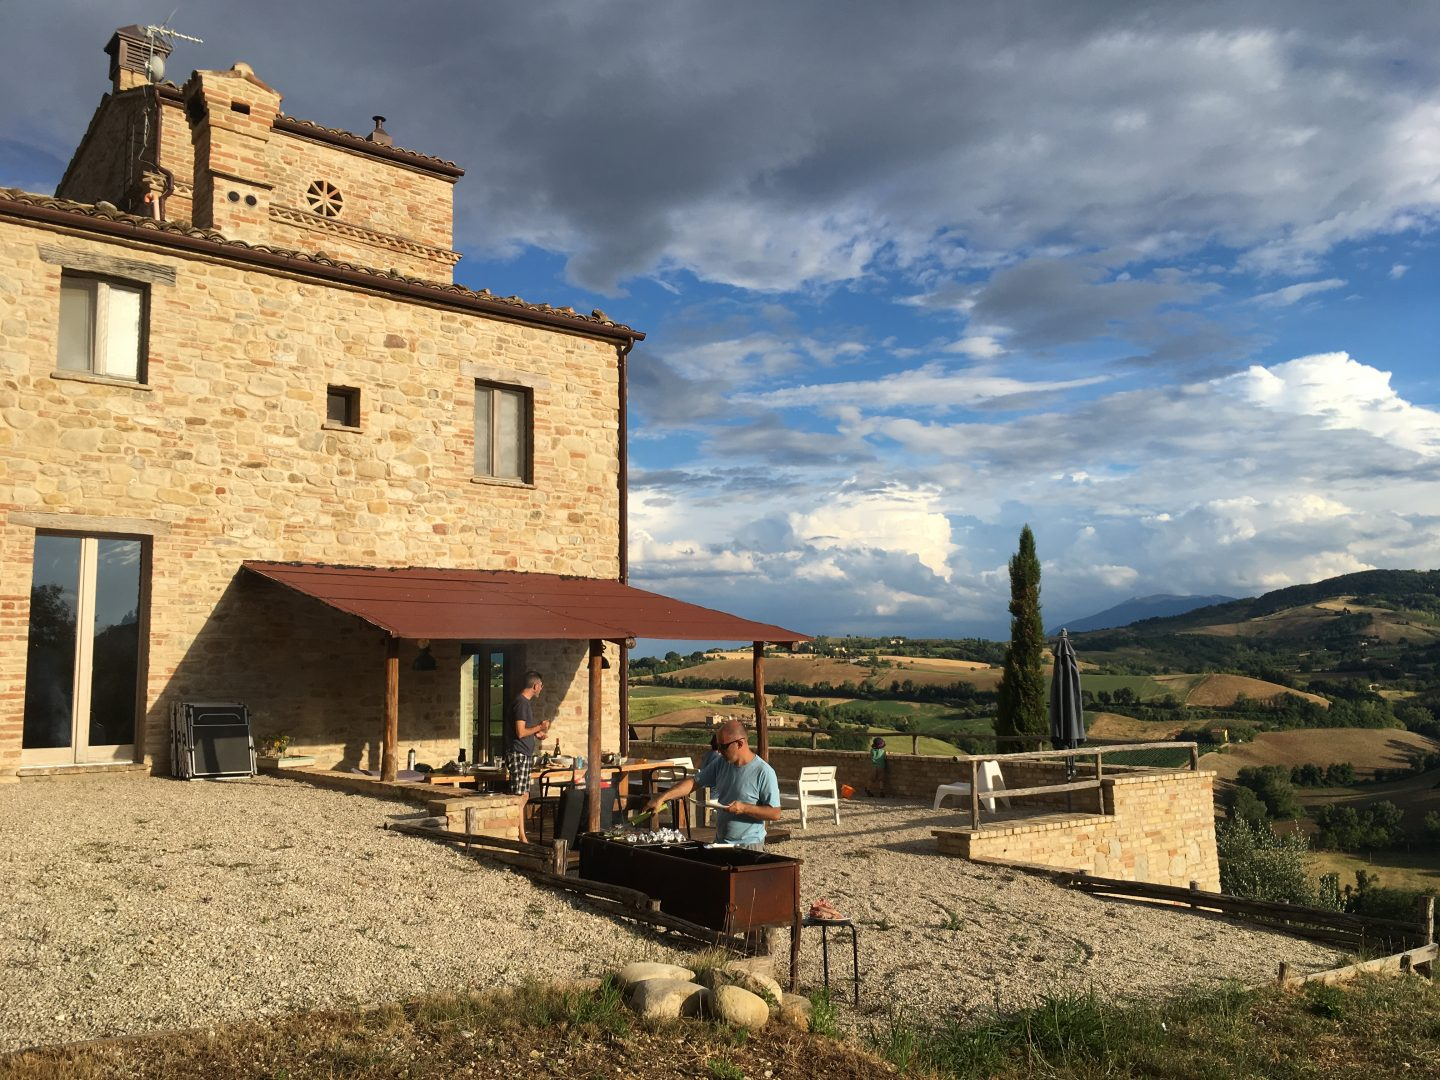 Le Marche villa Family Friendly Stays #5